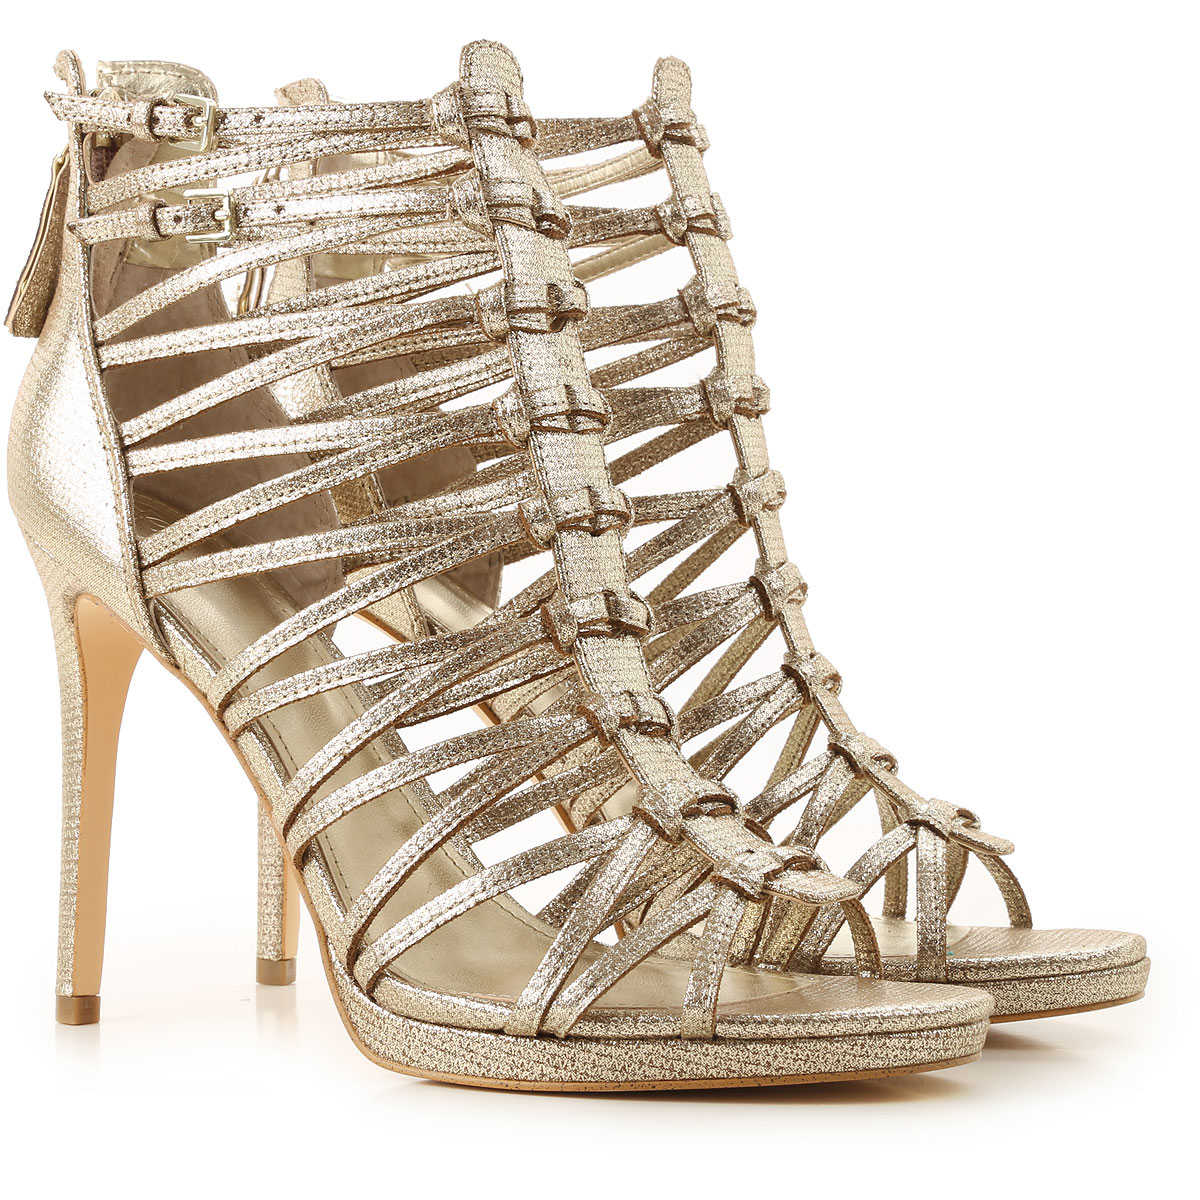 Guess Sandals for Women Gold USA - GOOFASH